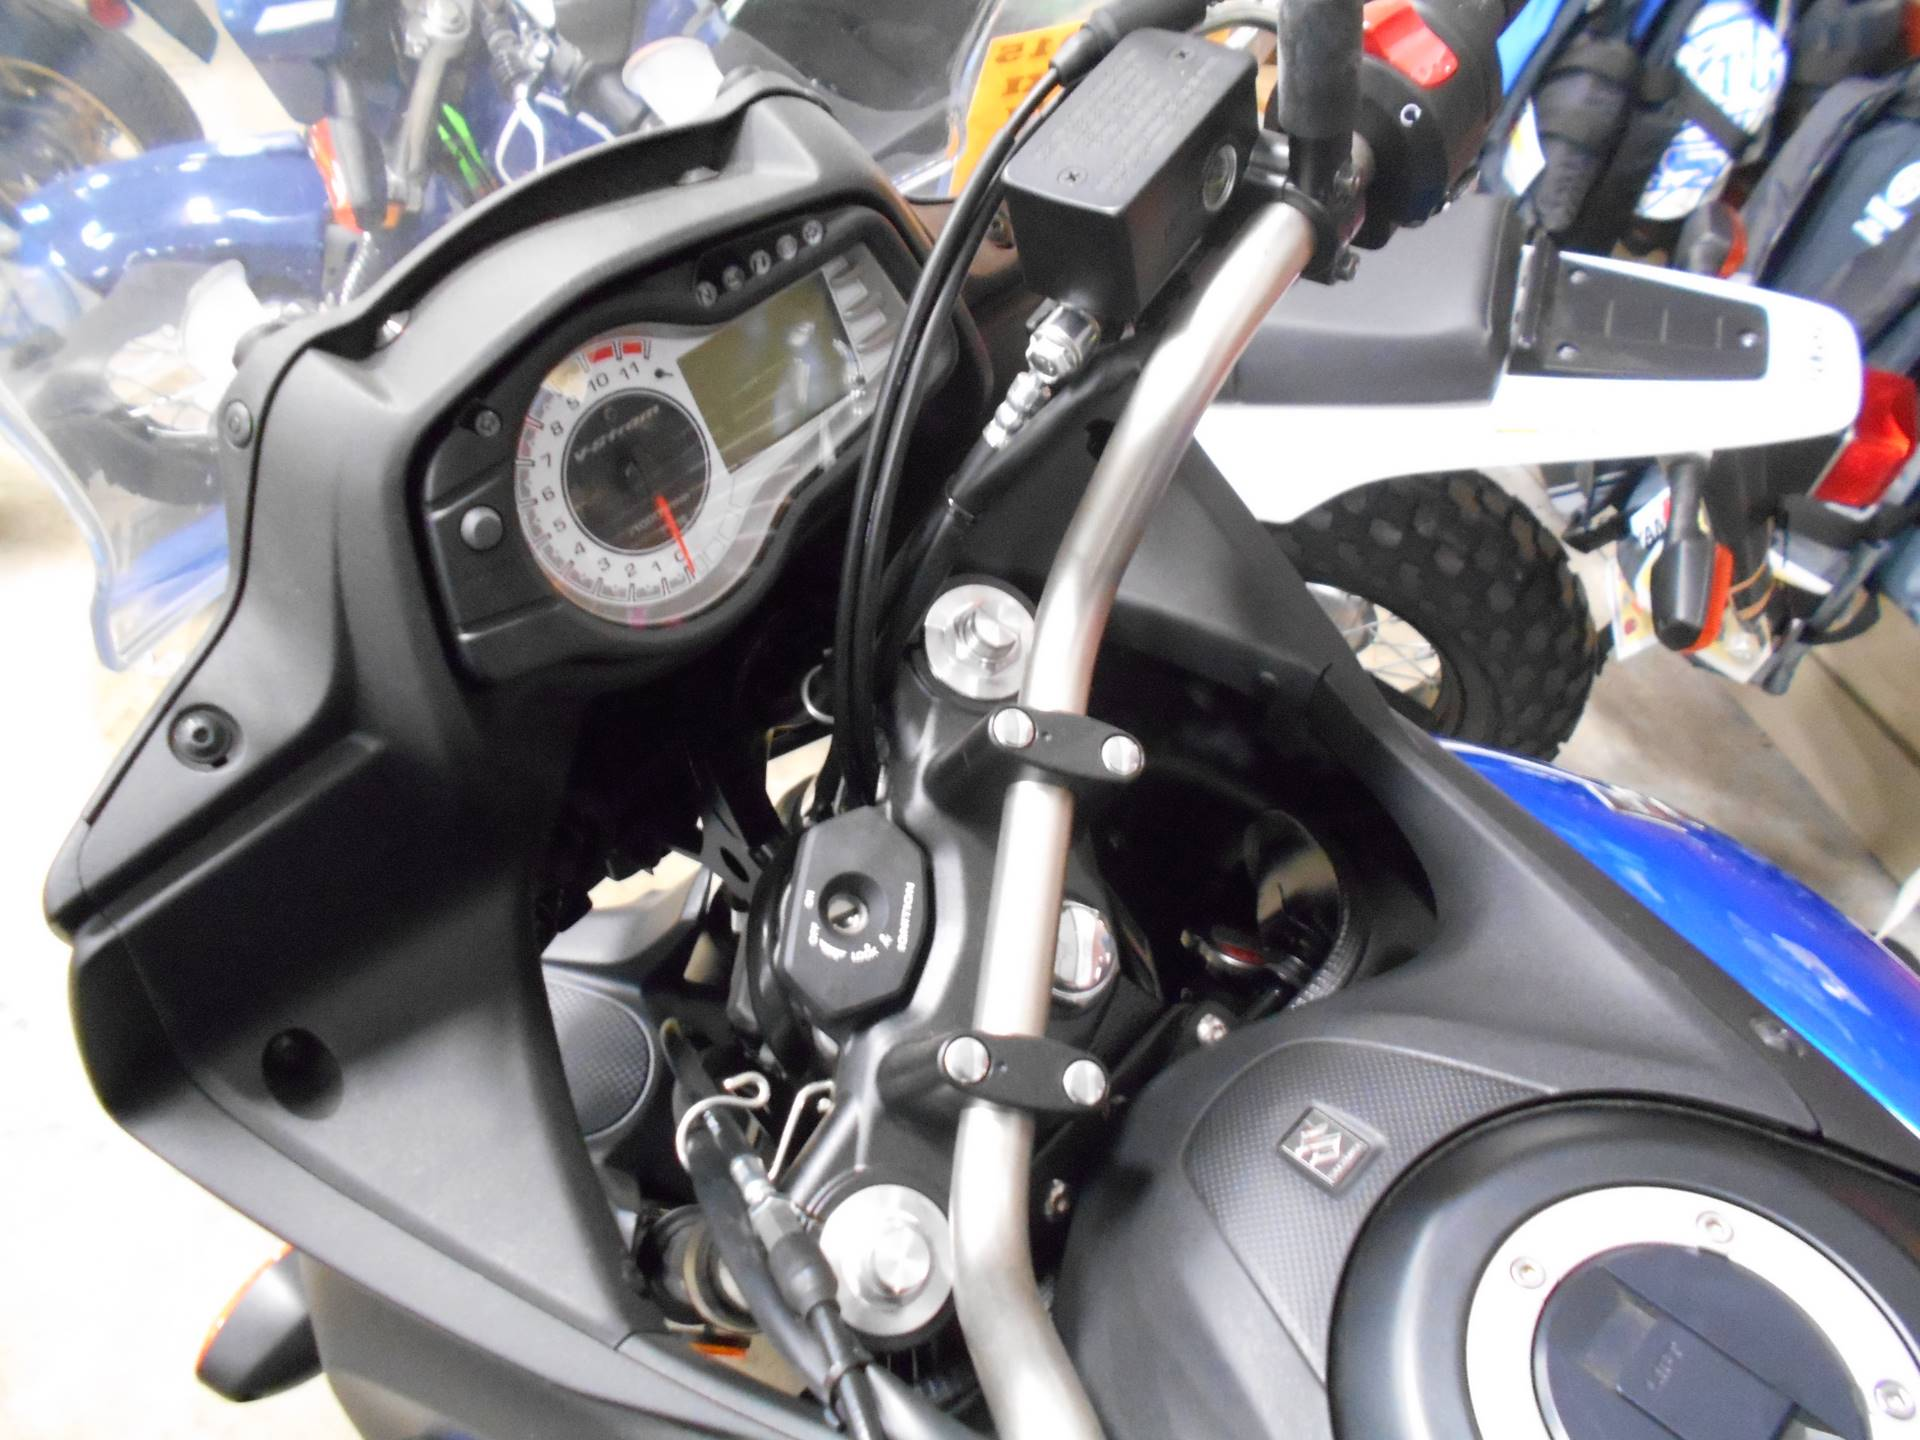 2015 Suzuki V-Strom 650 ABS in Belvidere, Illinois - Photo 6